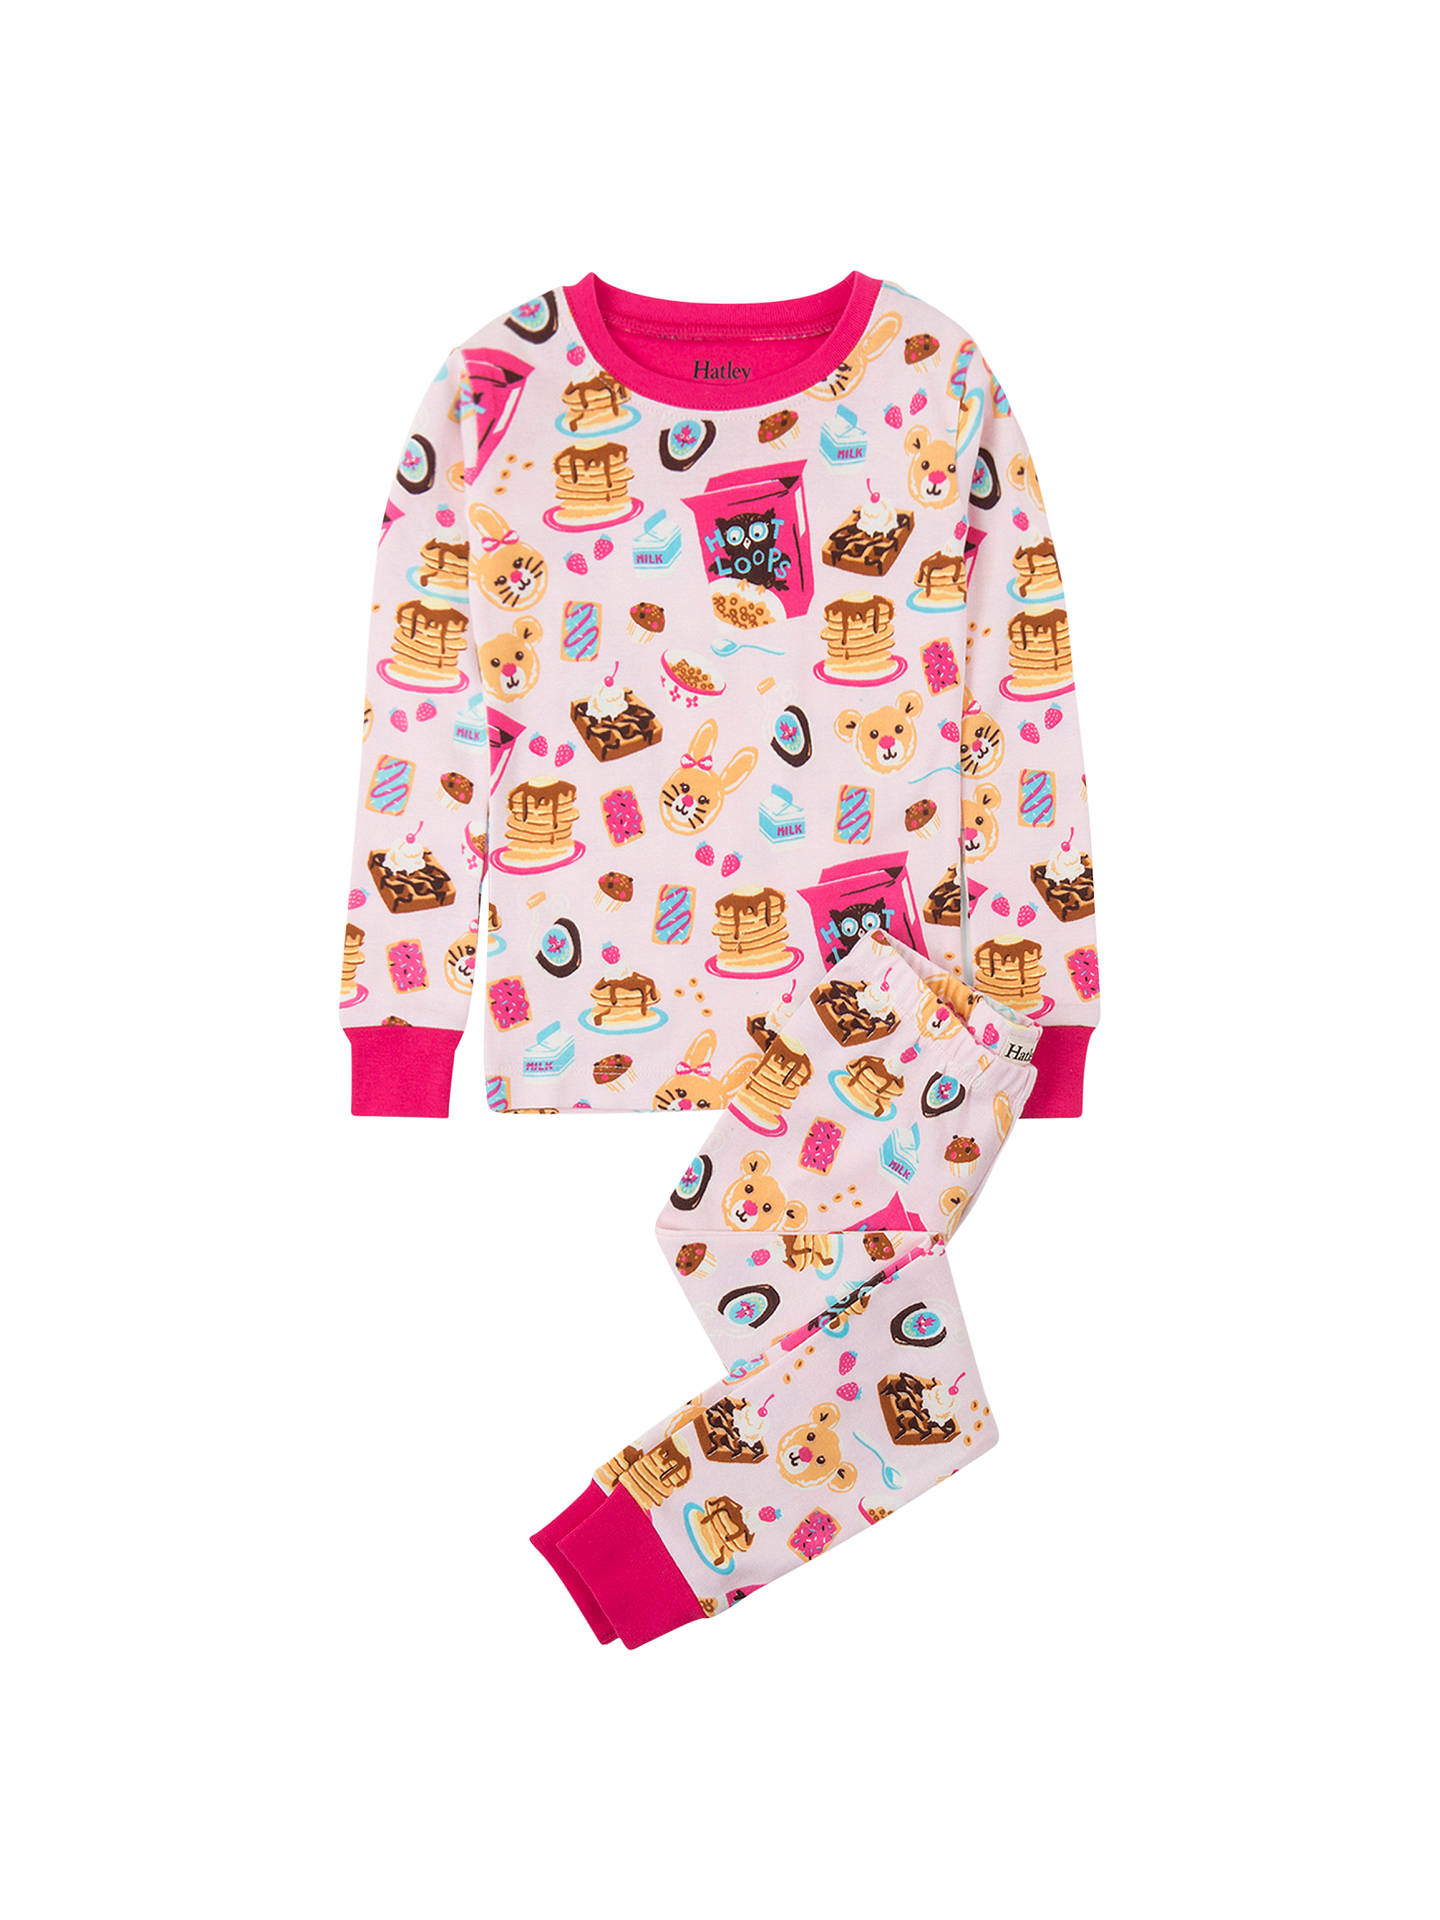 c1aad1a37 Hatley Girls  Breakfast Organic Cotton Pyjamas